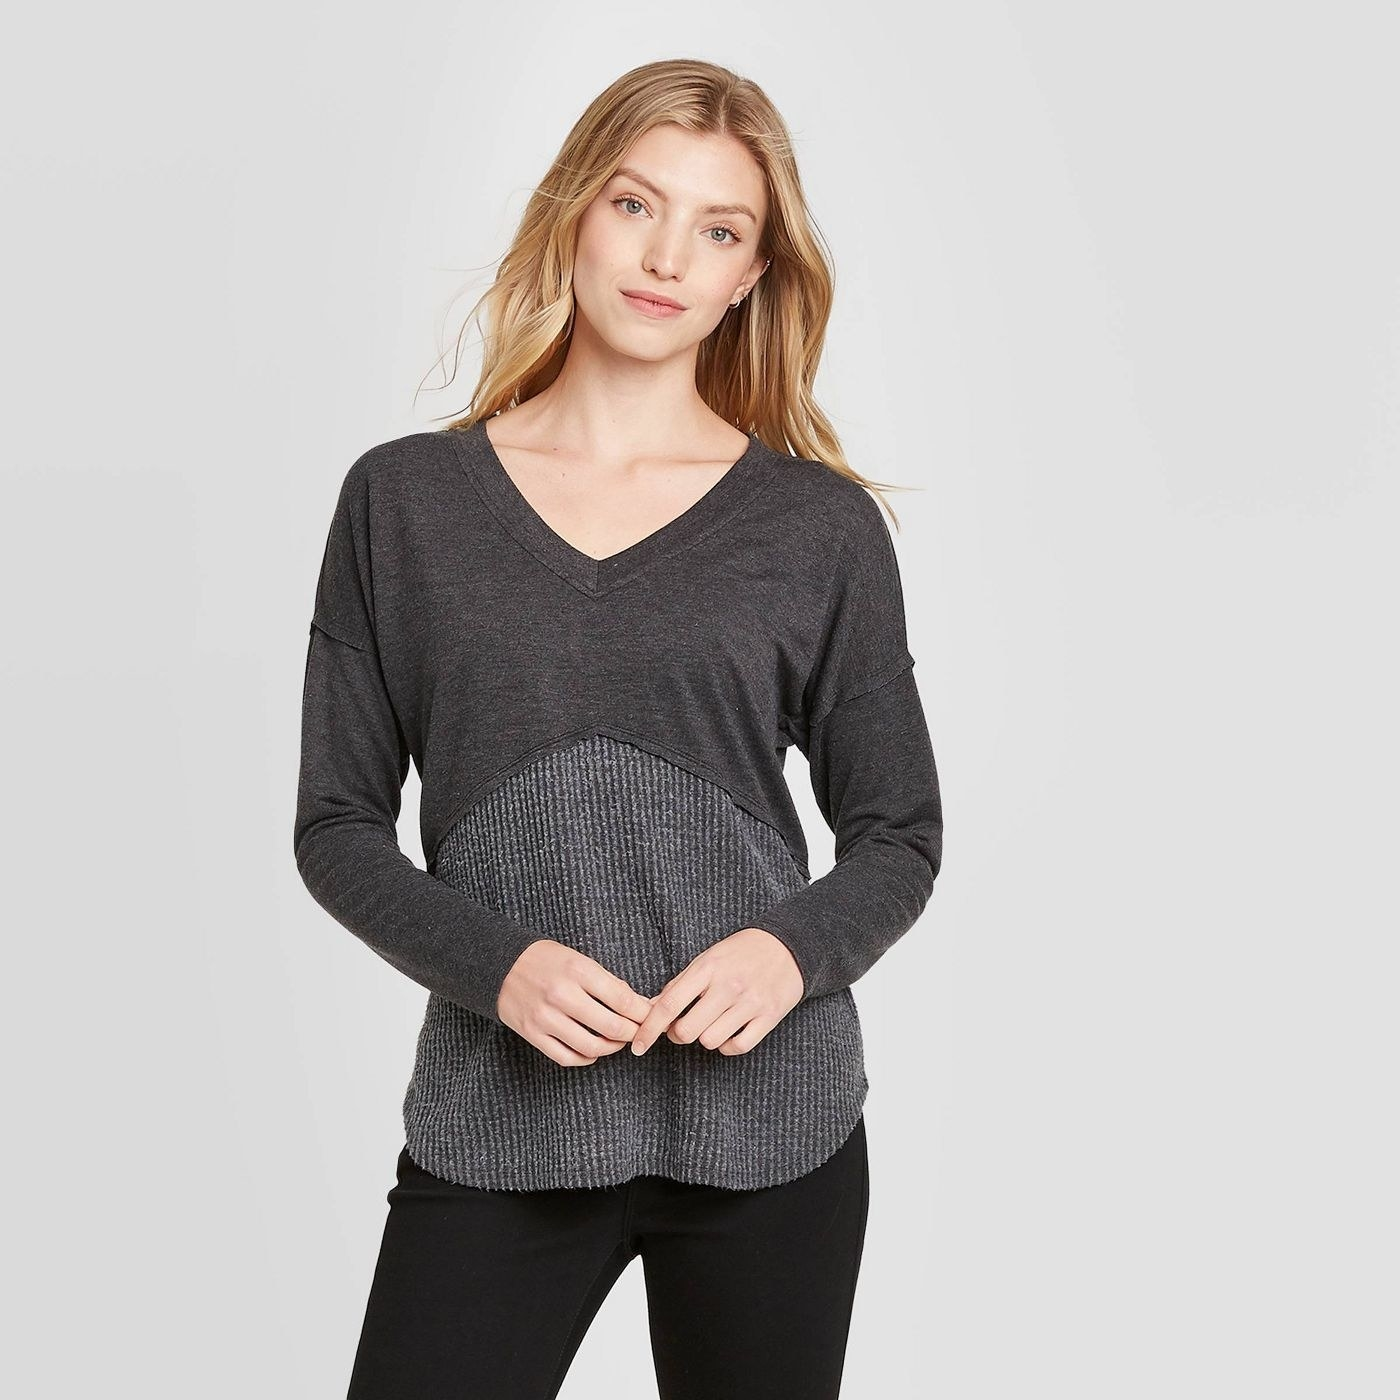 Model in long sleeve tiered top with criss cross back details